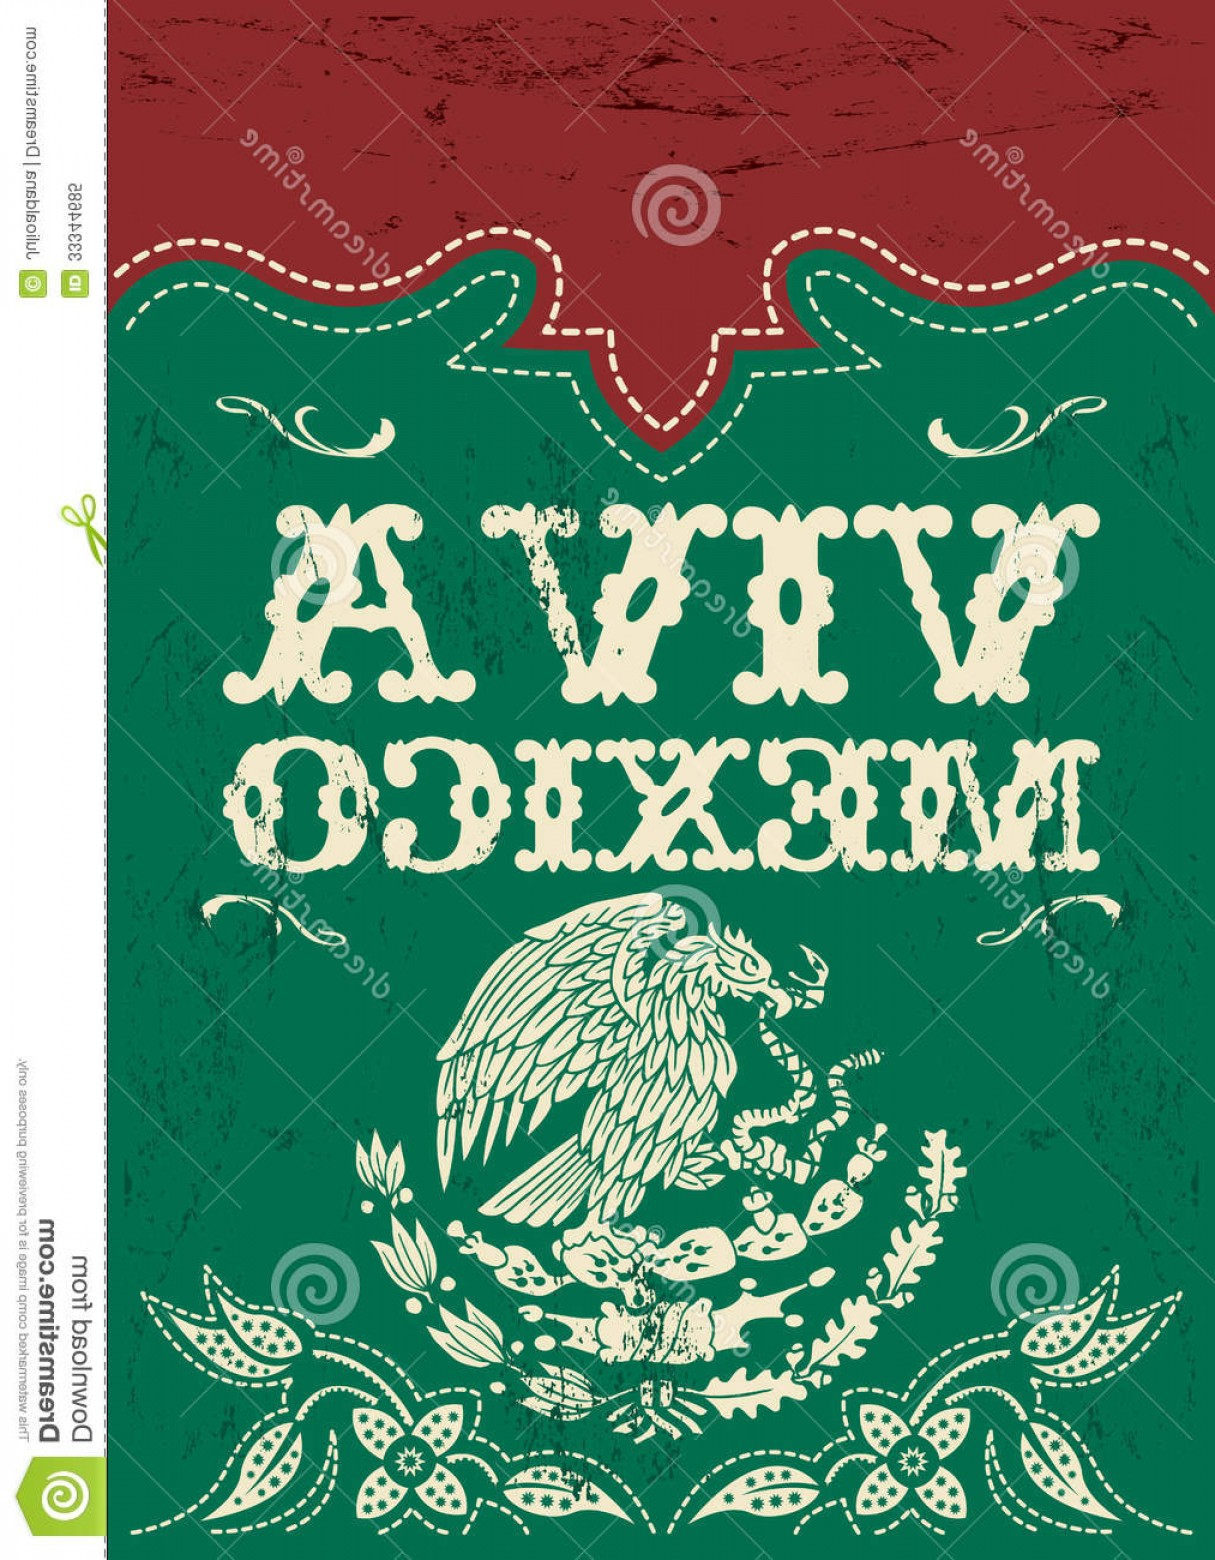 Fiesta Mexico Vector: Royalty Free Stock Photo Vintage Viva Mexico Mexican Holiday Vector Poster Grunge Effects Can Be Easily Removed Image